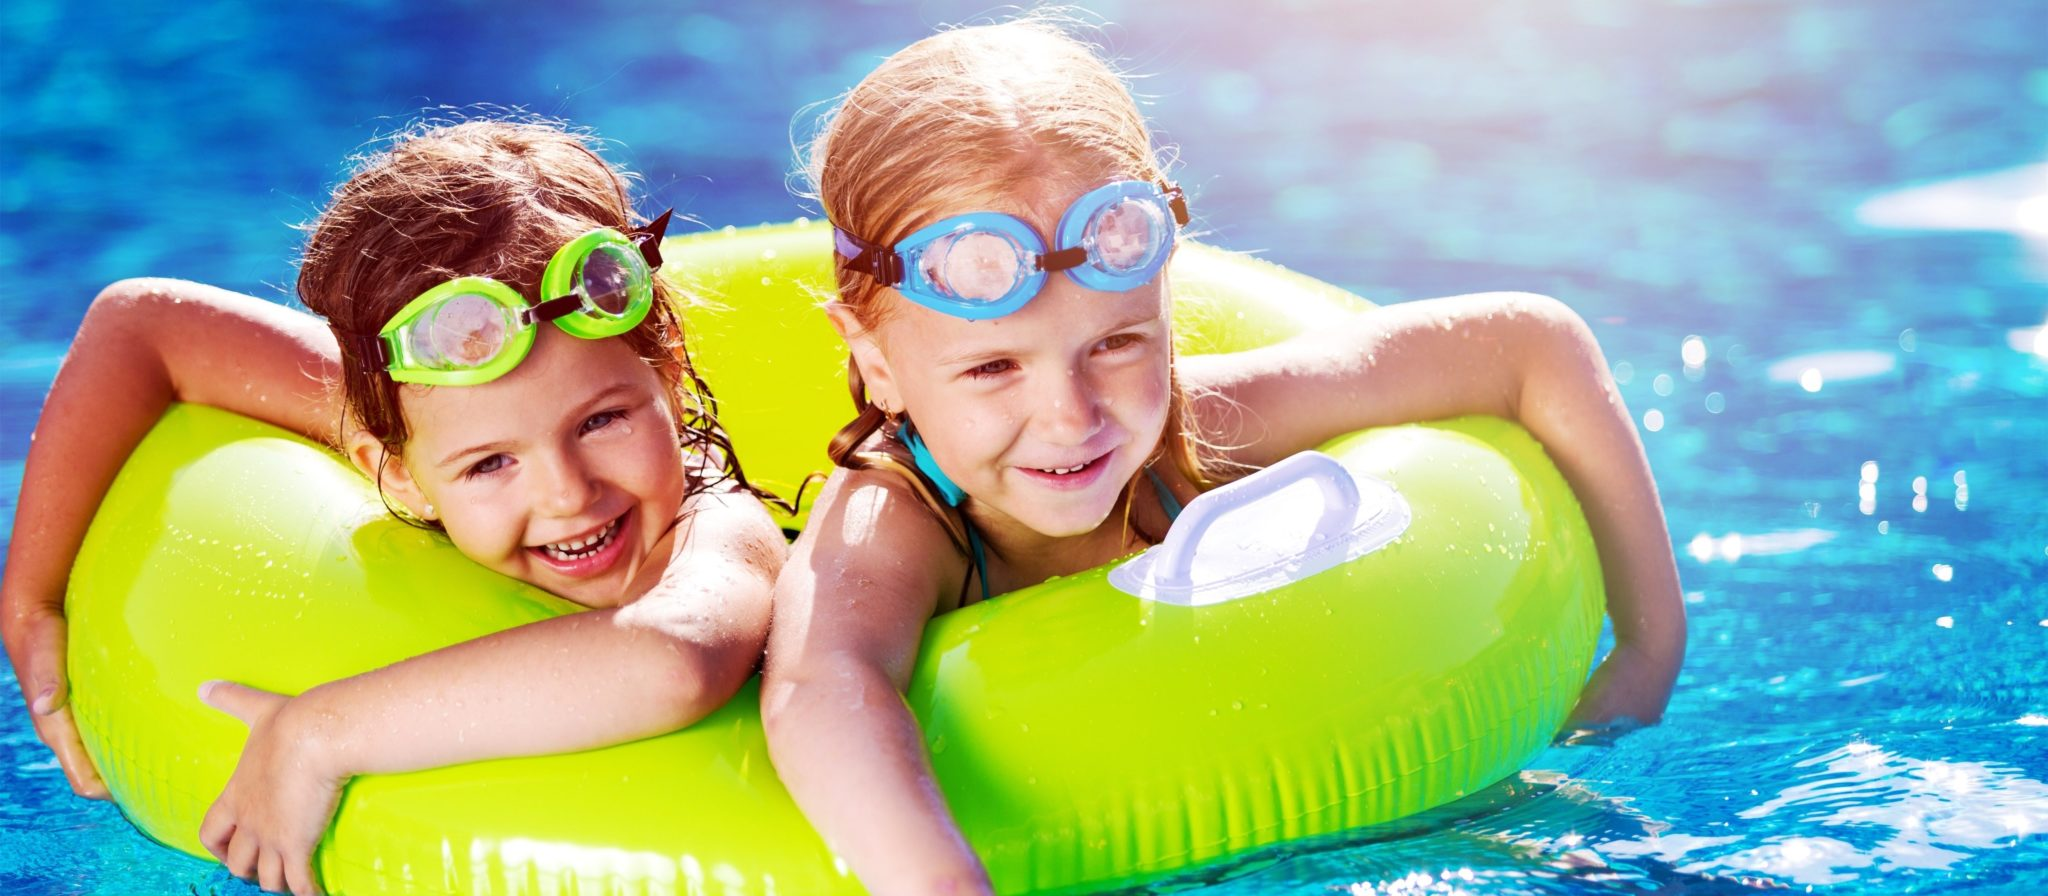 Socializing is one of the other swimming benefits for young children. Fun times at the pool develop important communication skills.